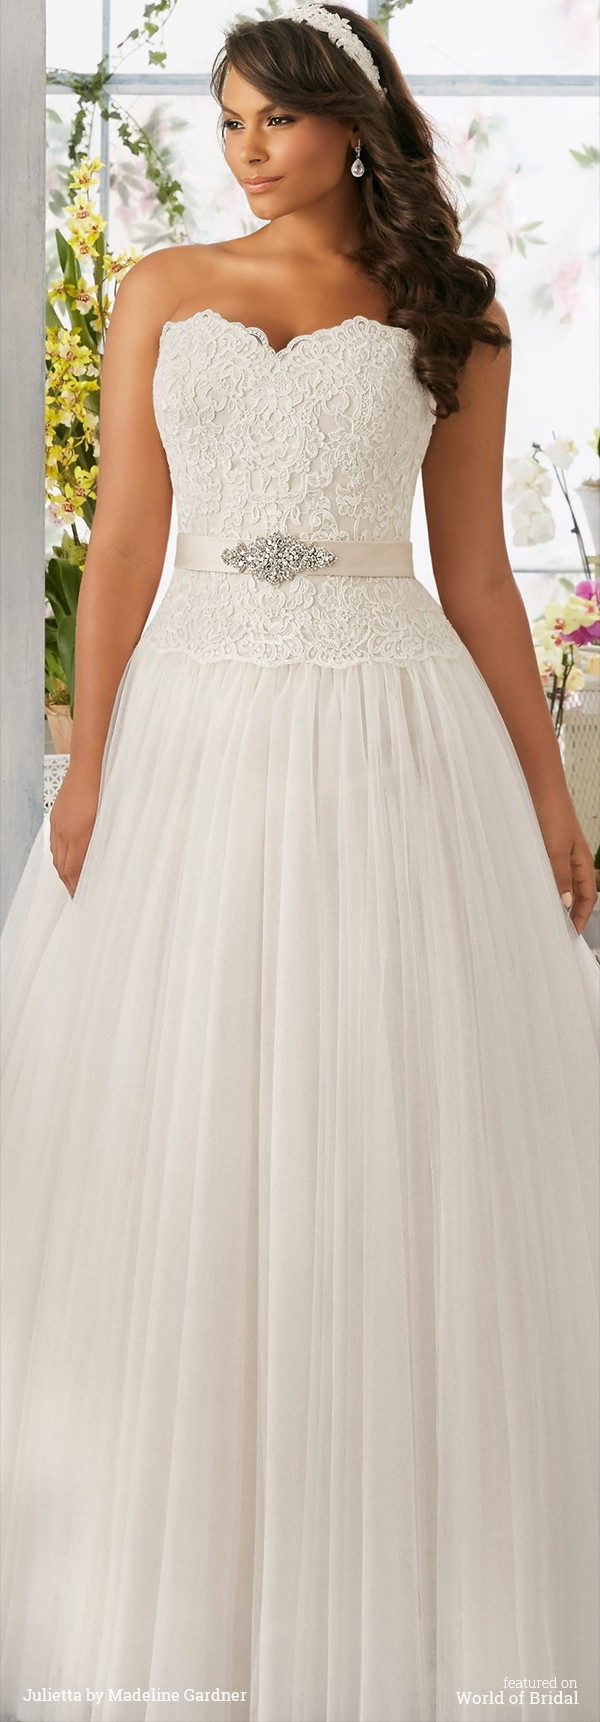 855d107c7814 ... by Madeline Gardner Spring 2016 Plus Size Ball Gown Embroidered Lace  Bodice onto the Soft Net, Ball Gown Skirt with Medallion Beaded Satin  Waistband ...